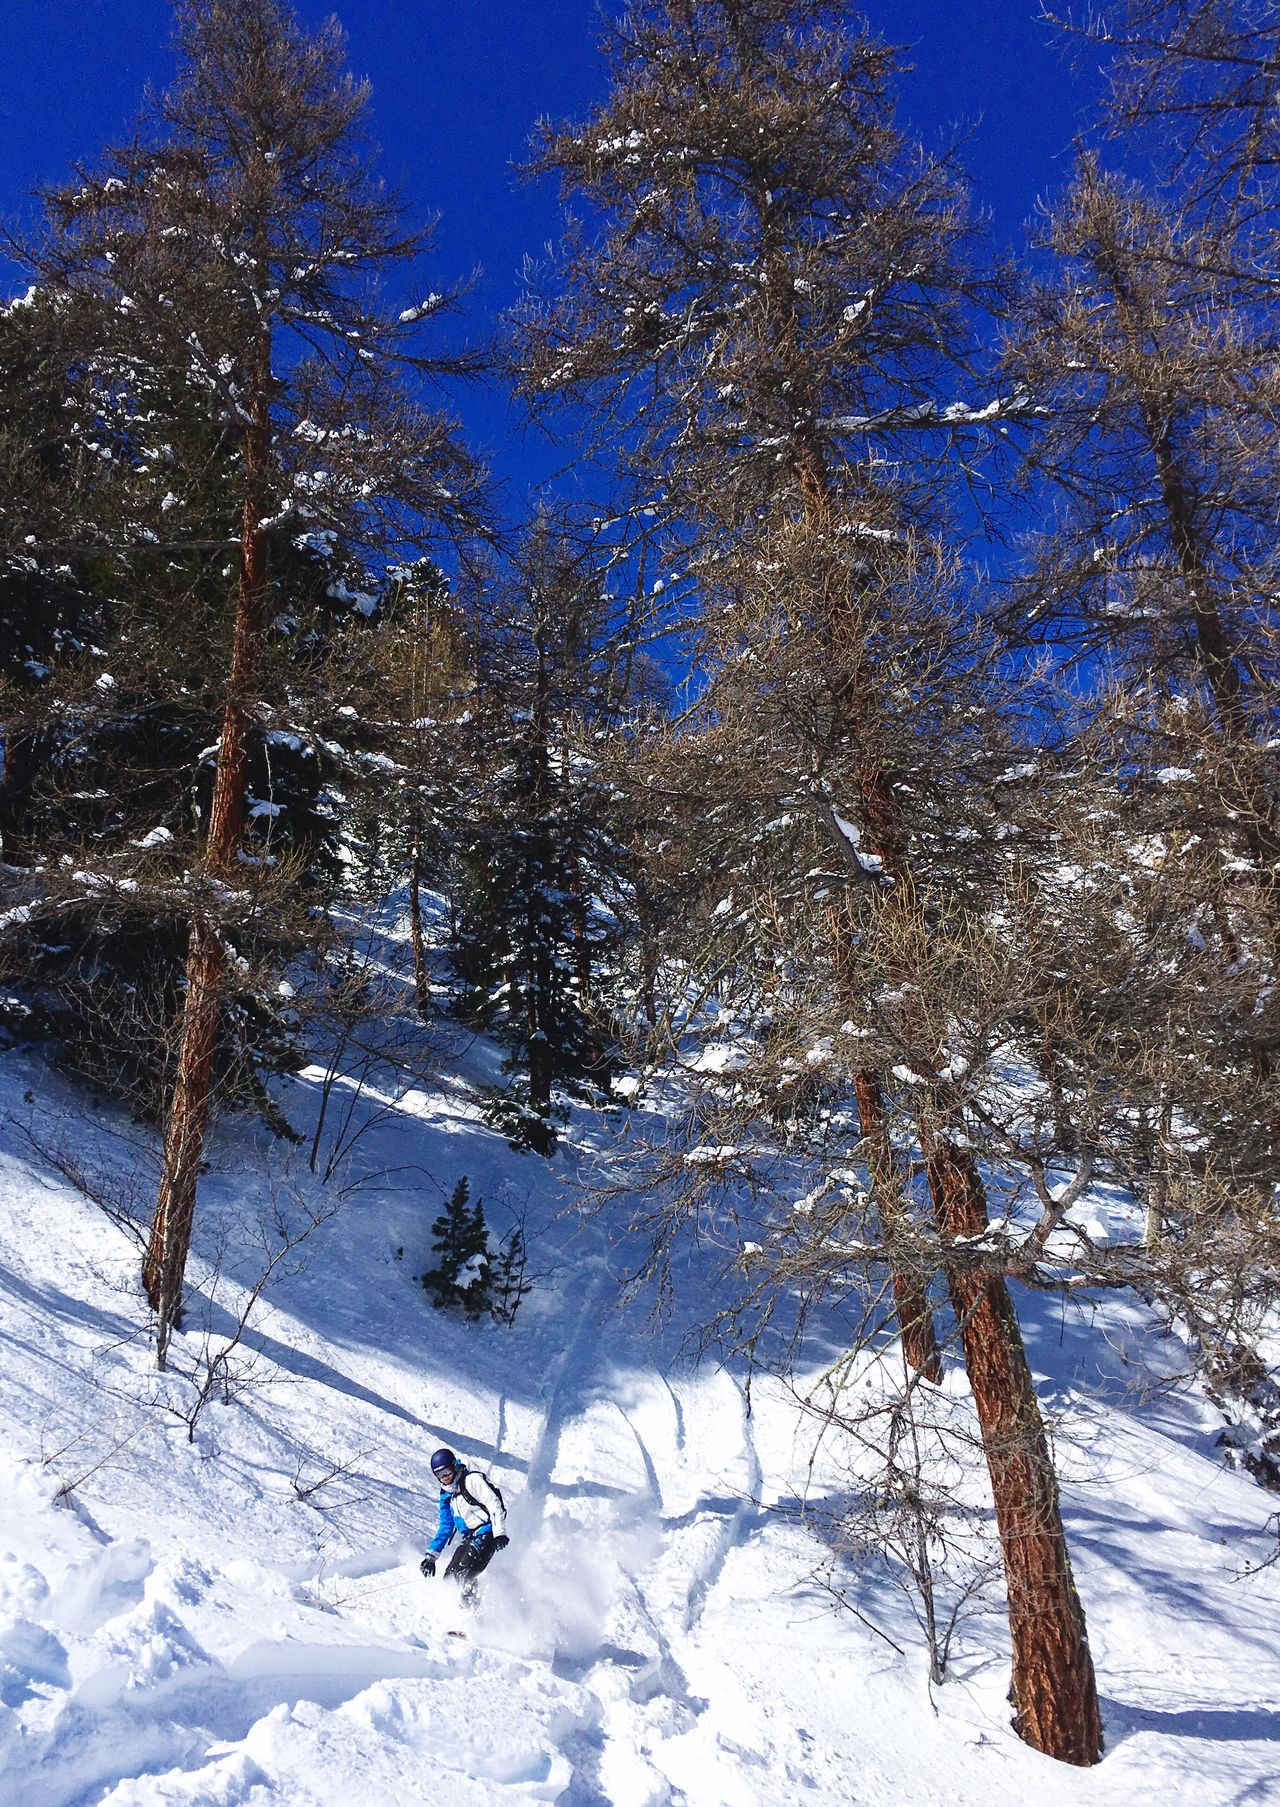 Showcase March Snowboarding Snow Off Piste Backcountry Alps Forest Winter Winter Wonderland Action Sports Trees Nature Bluebird Serre Chevalier